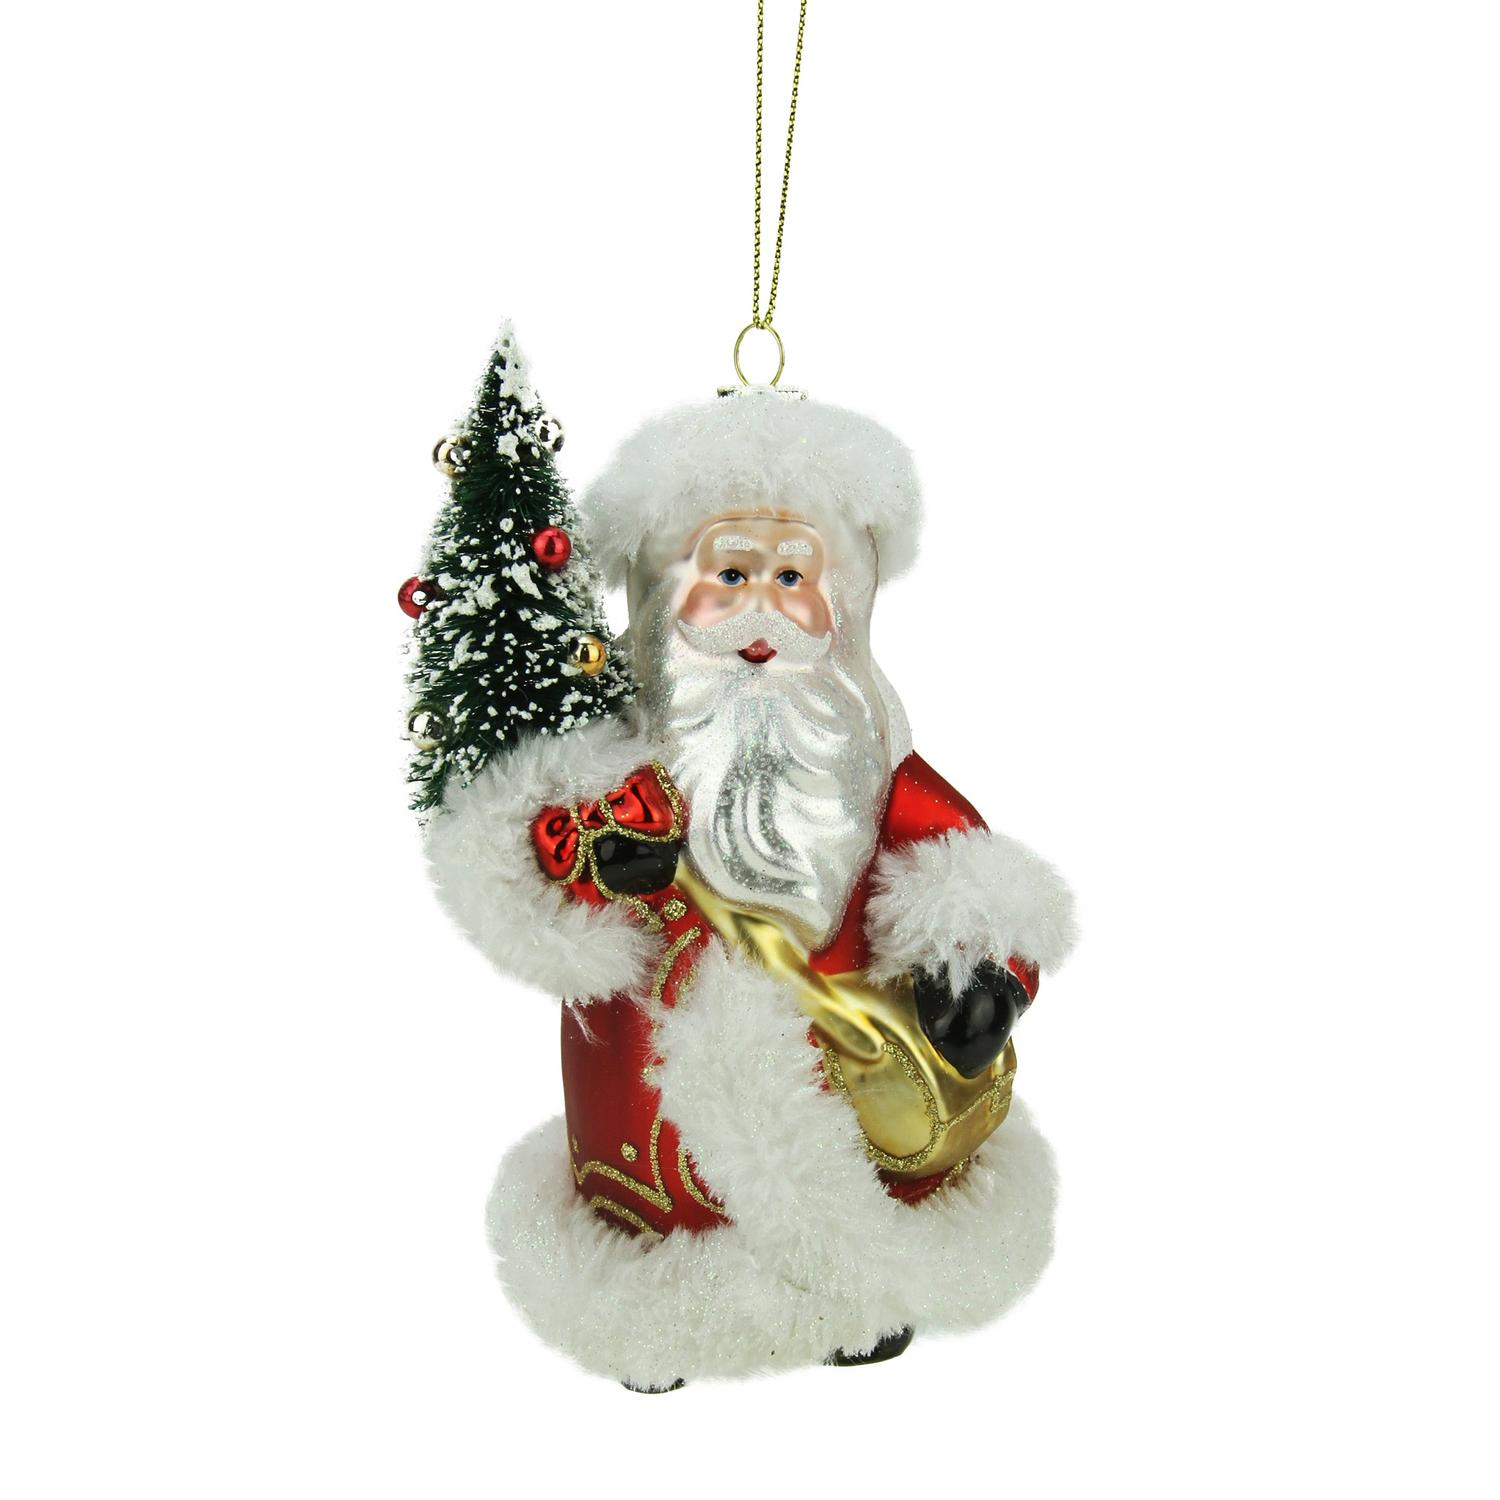 Old World Christmas Ornaments Wholesale